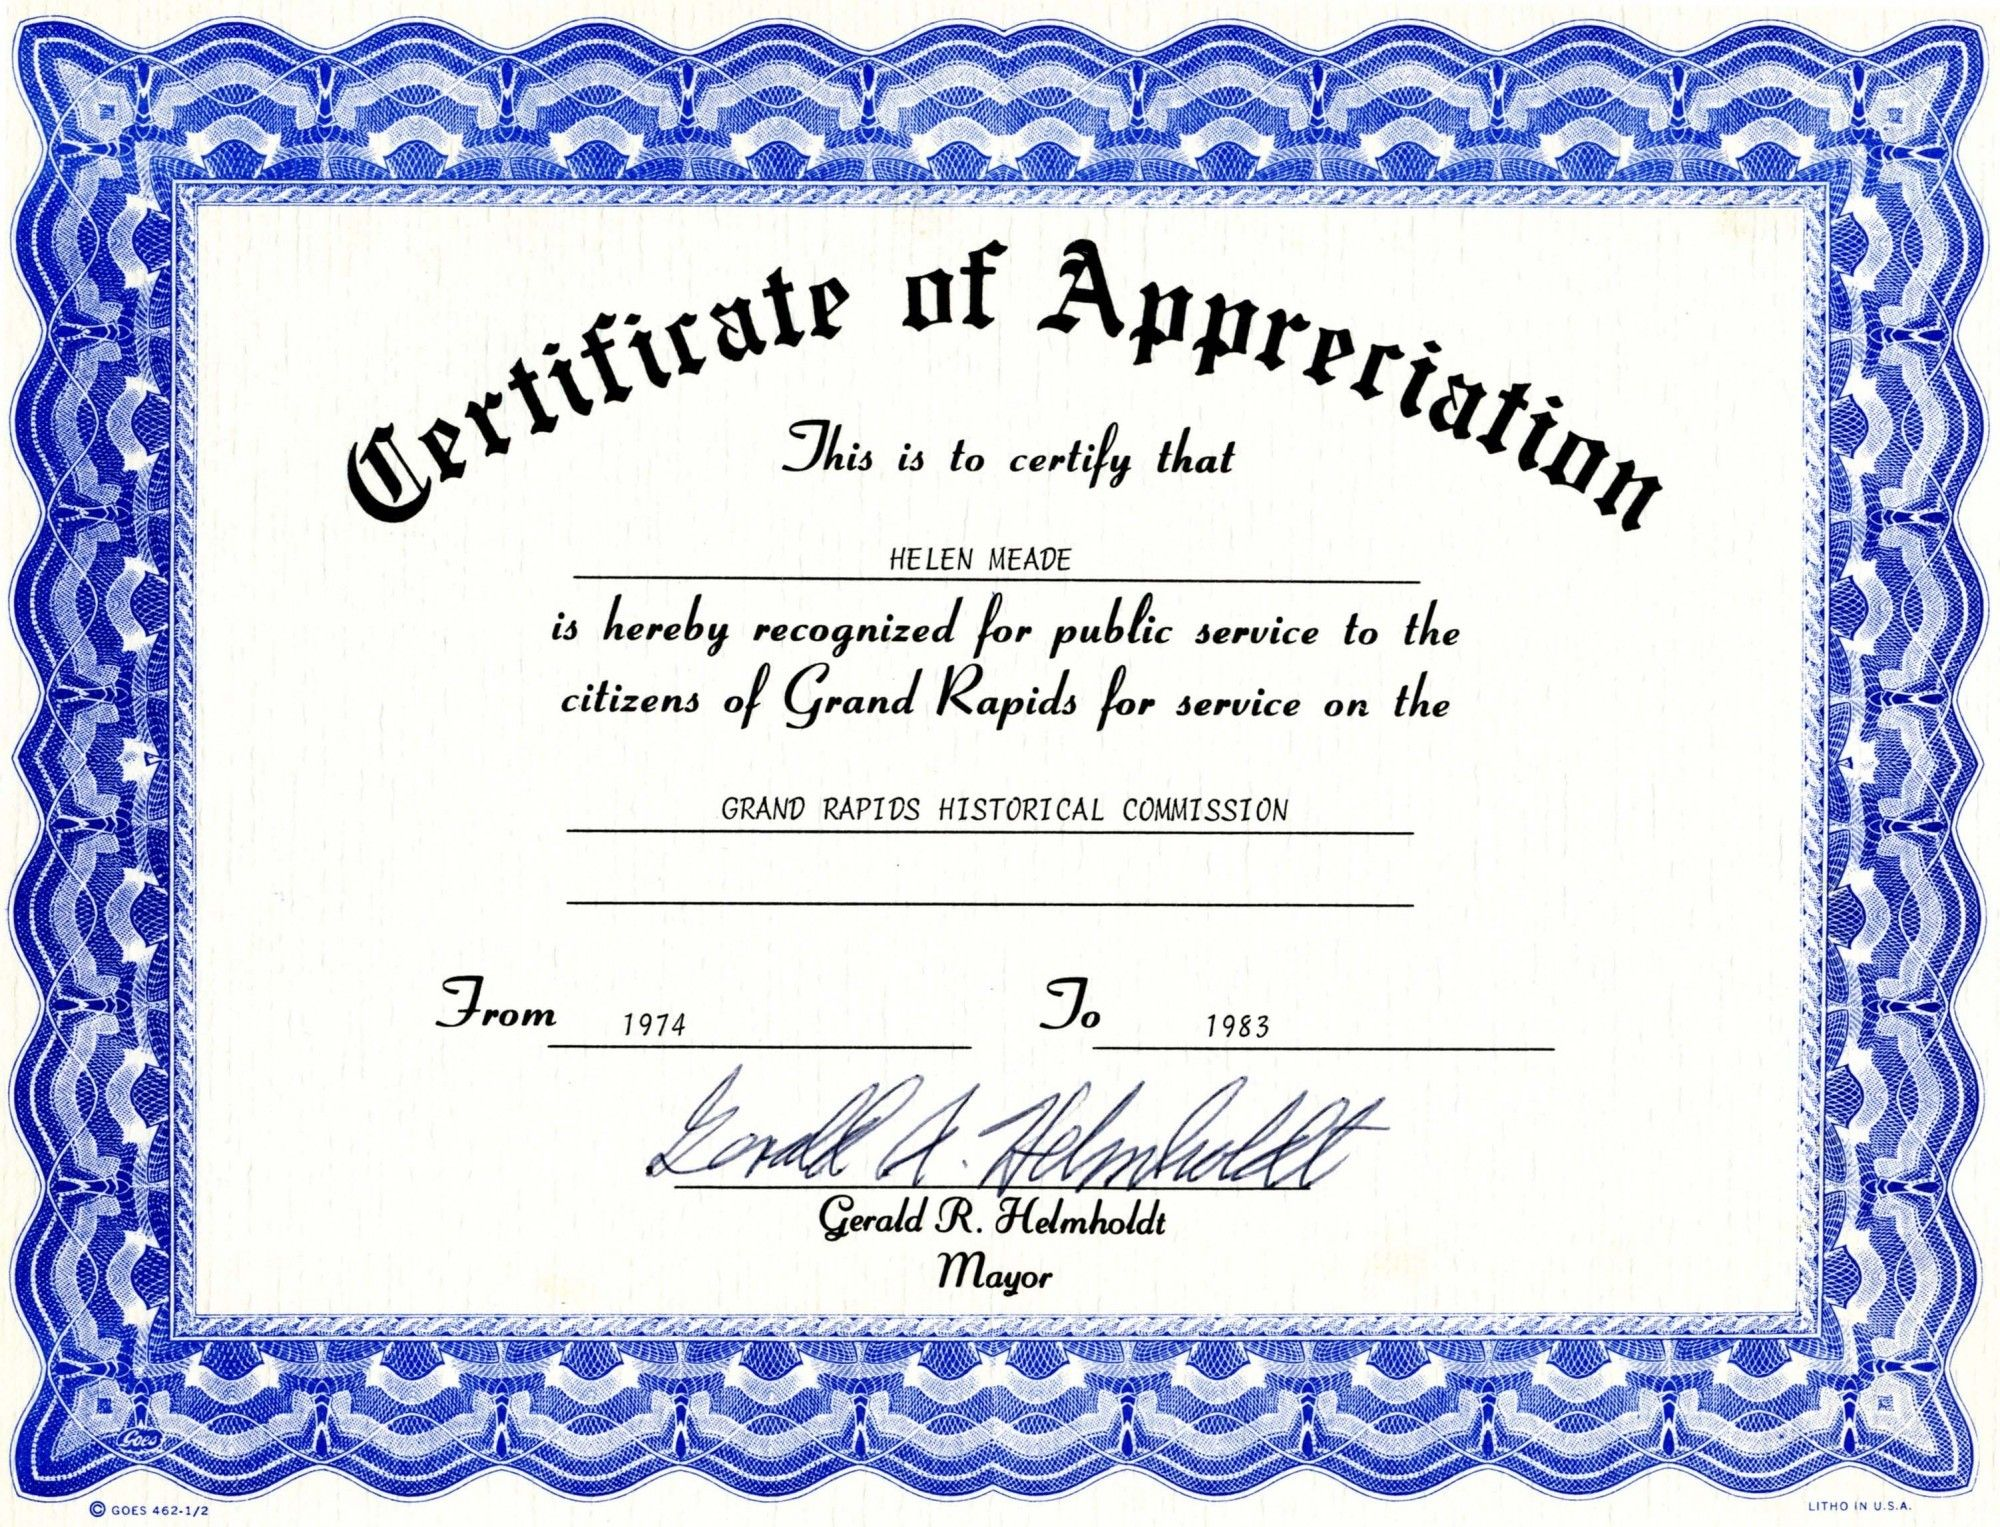 Appreciation certificate templates free download appreciation certificate templates free download besttemplates123 pronofoot35fo Choice Image